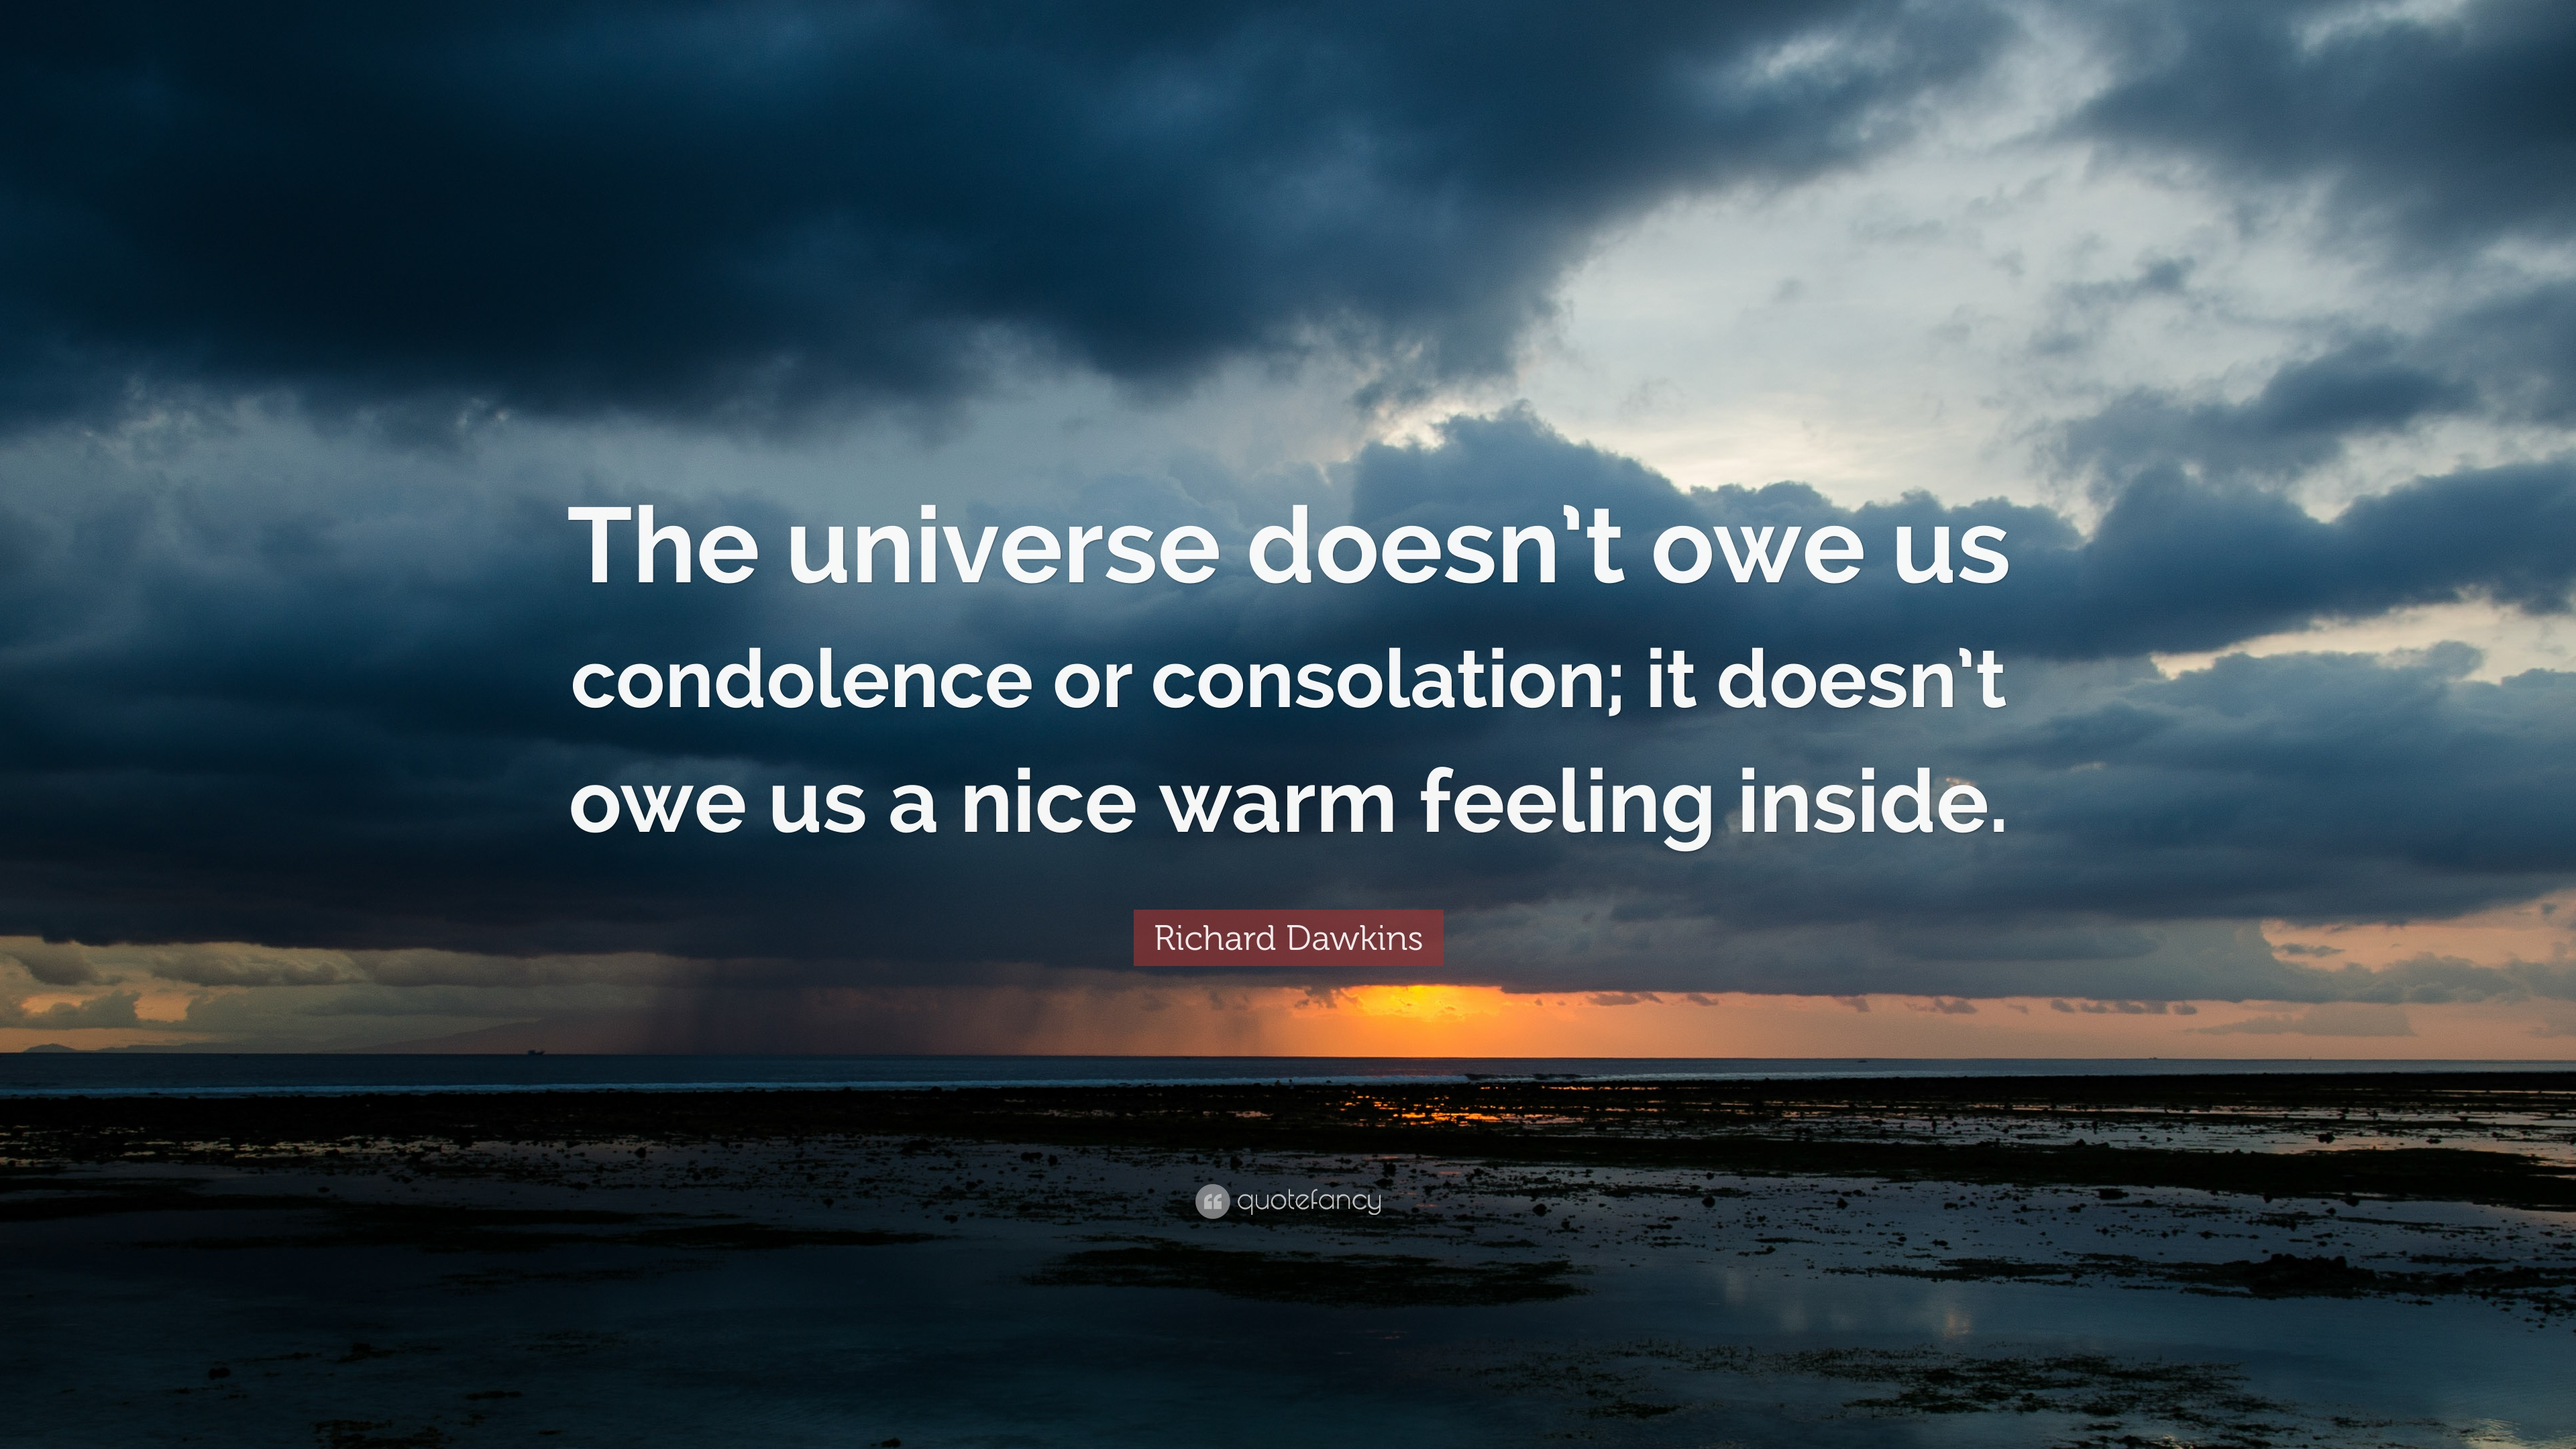 Richard dawkins quote the universe doesnt owe us condolence or richard dawkins quote the universe doesnt owe us condolence or consolation altavistaventures Images